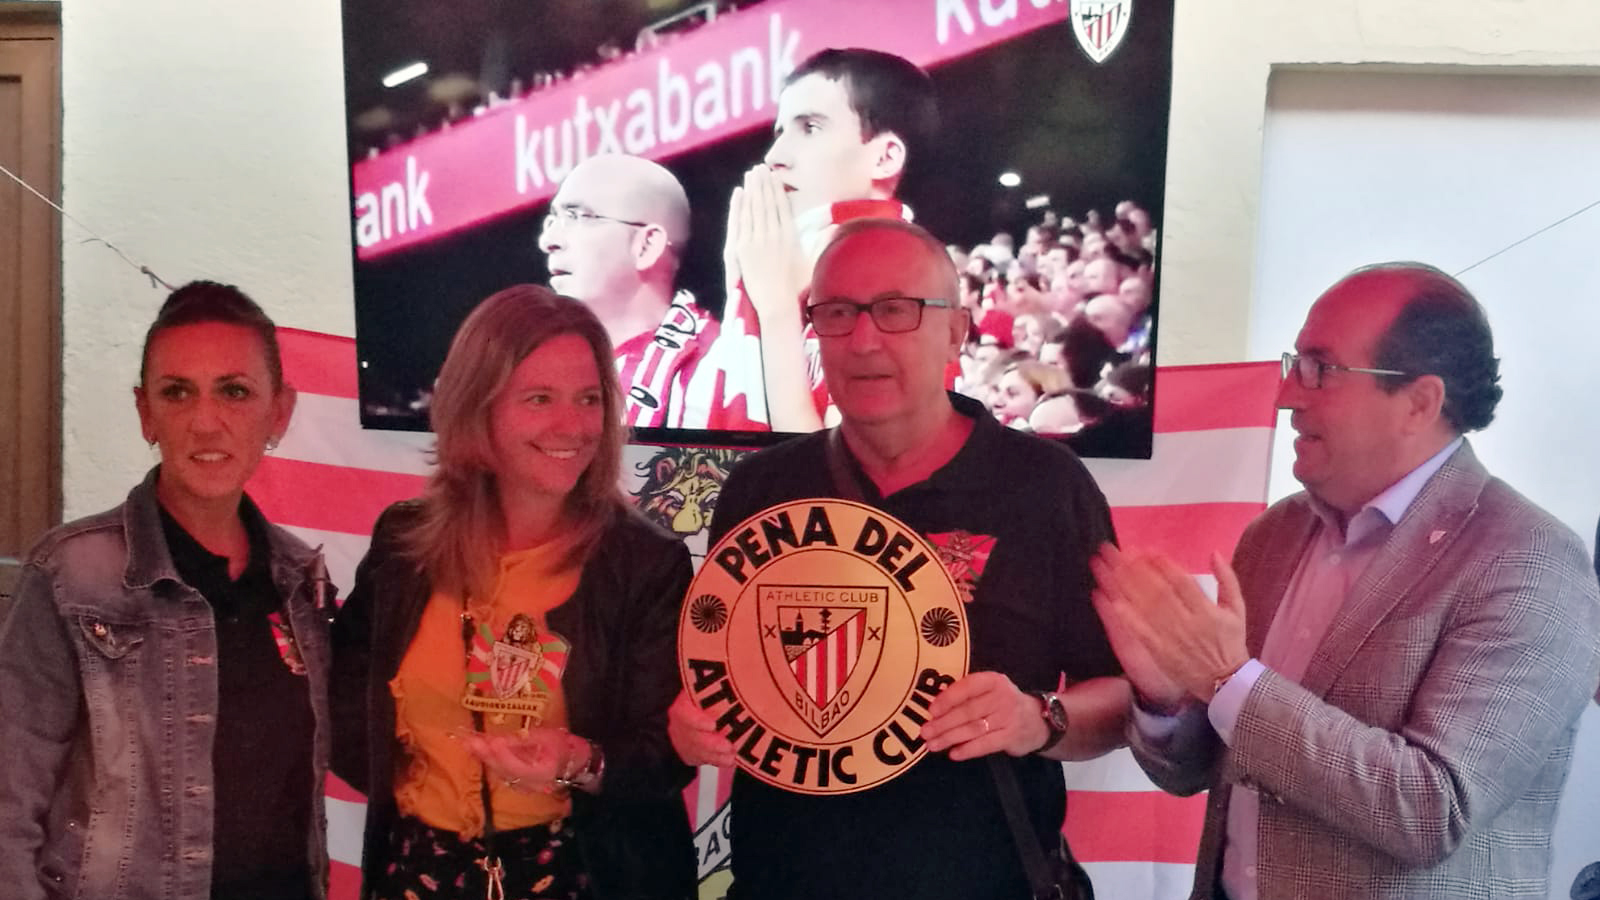 Athletic Zaleak, a new Fan Club in Araba